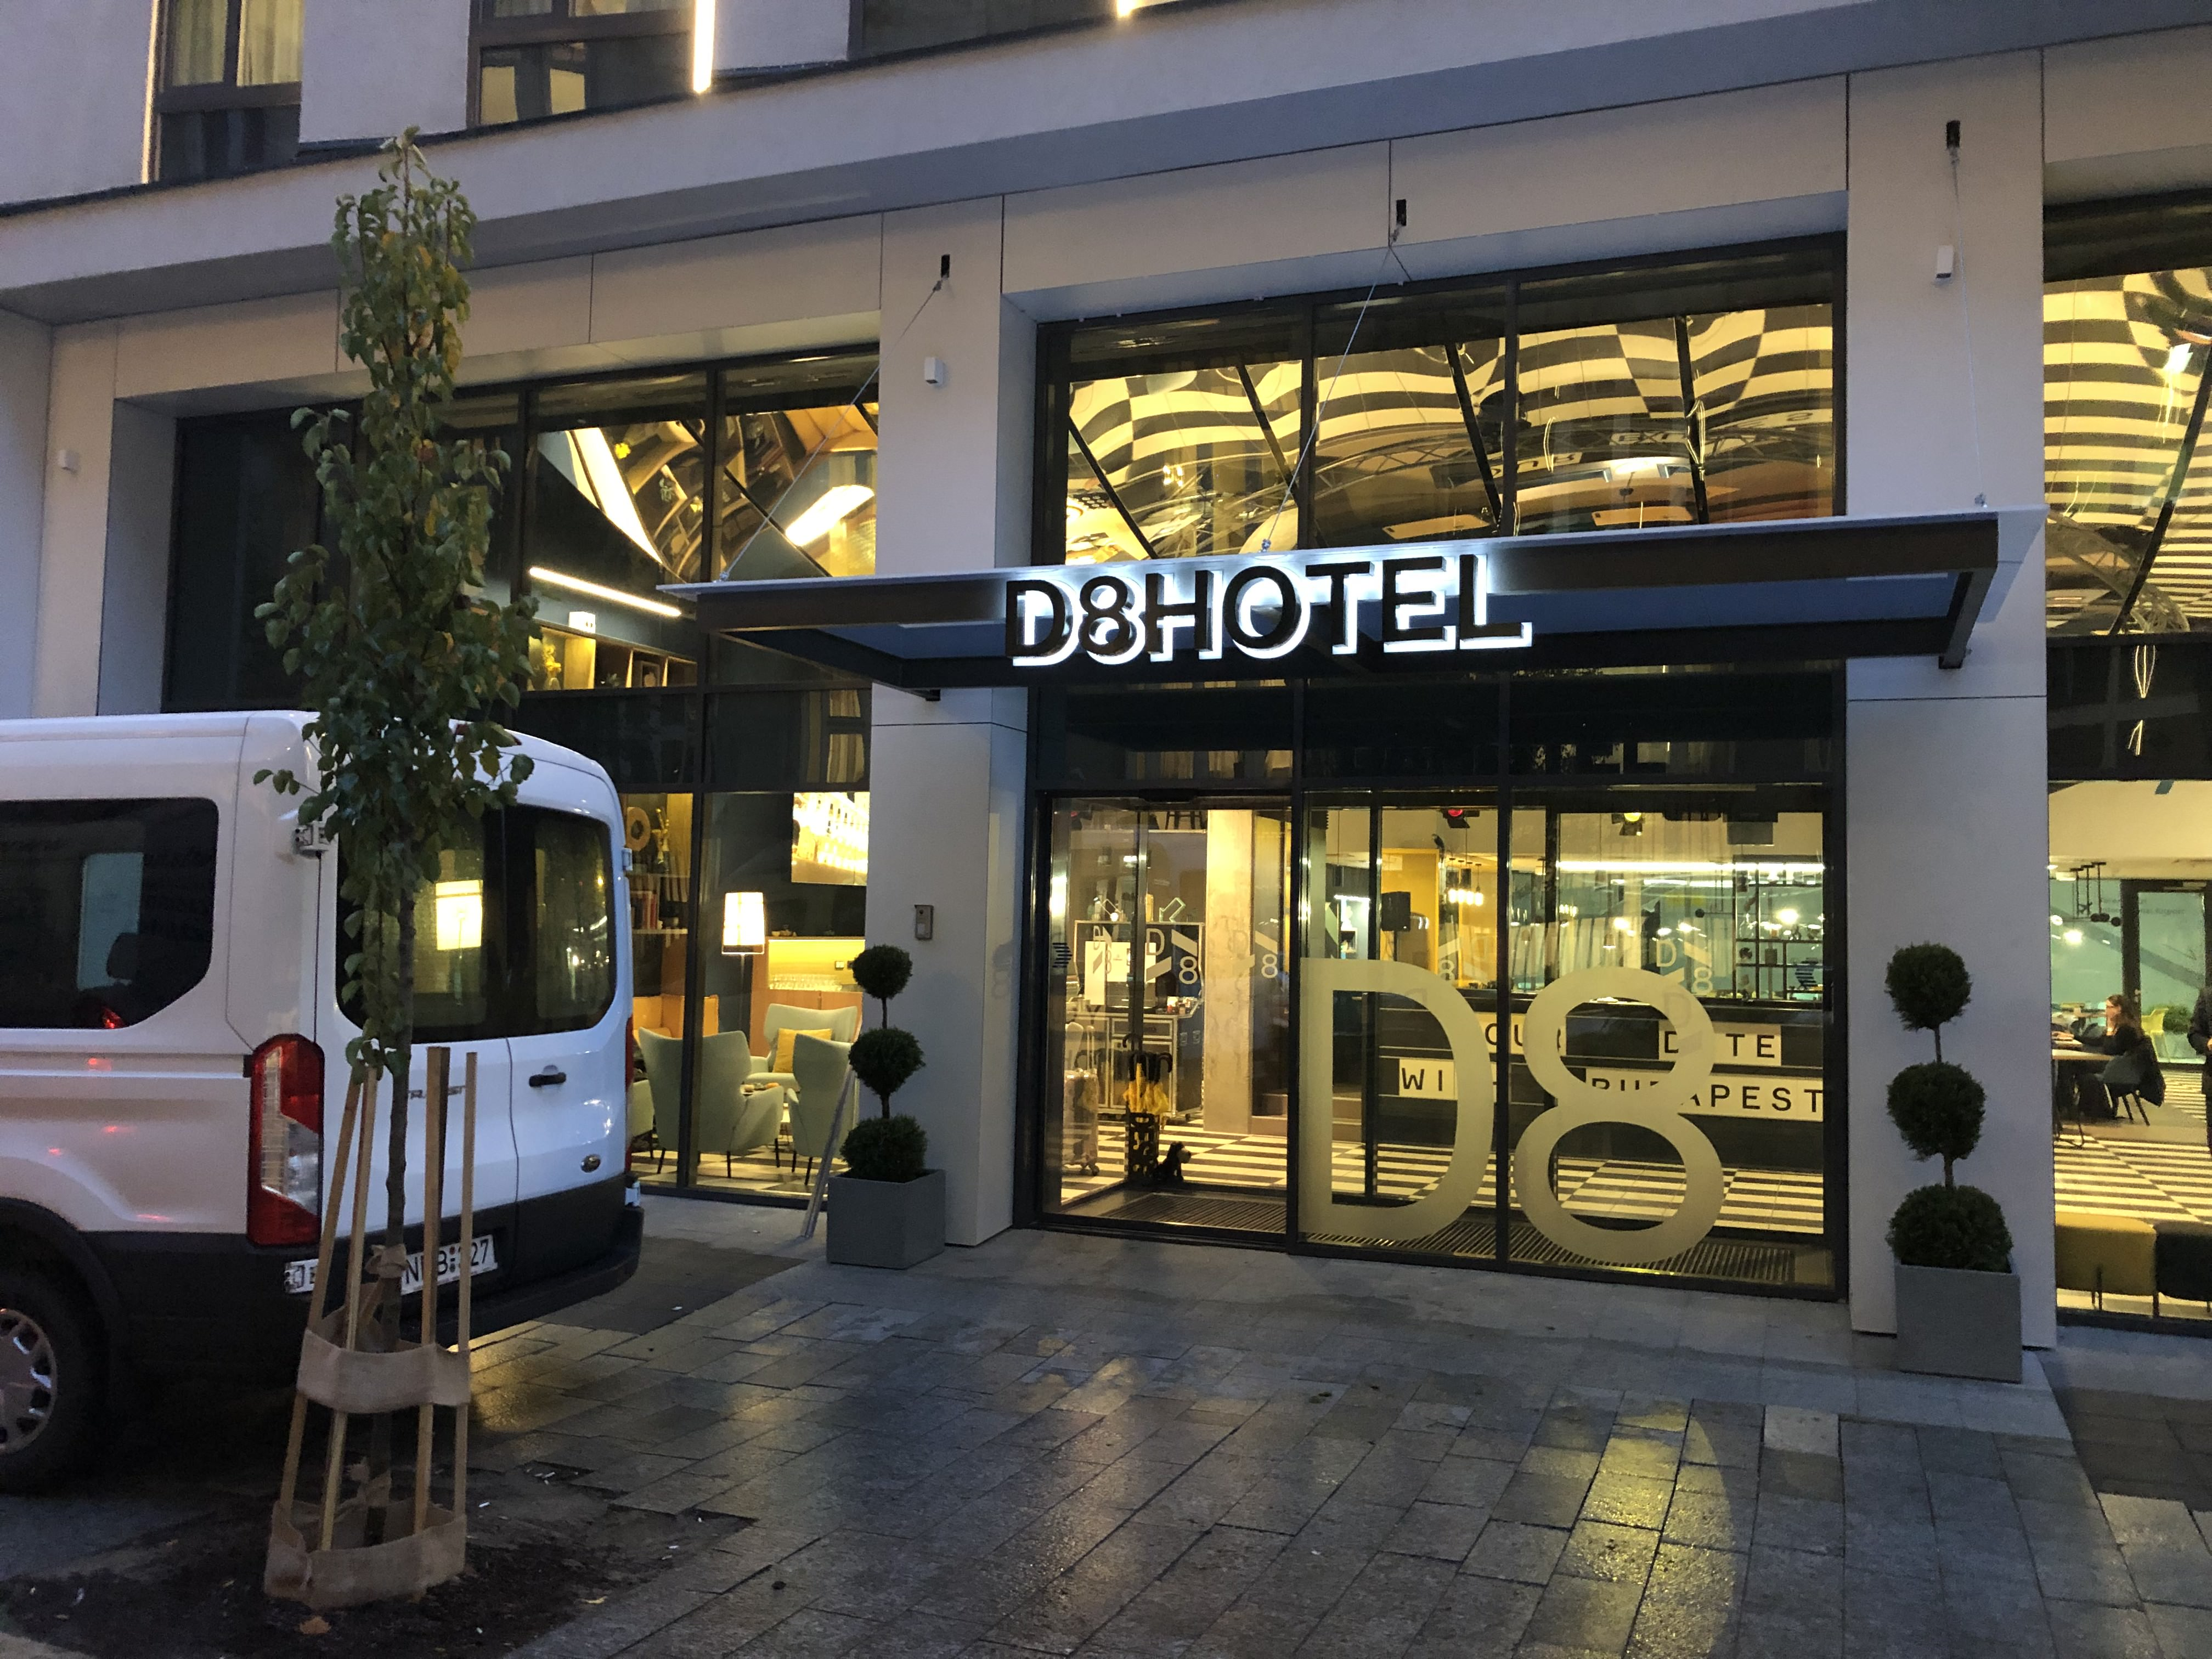 Budapest D8 Hotel